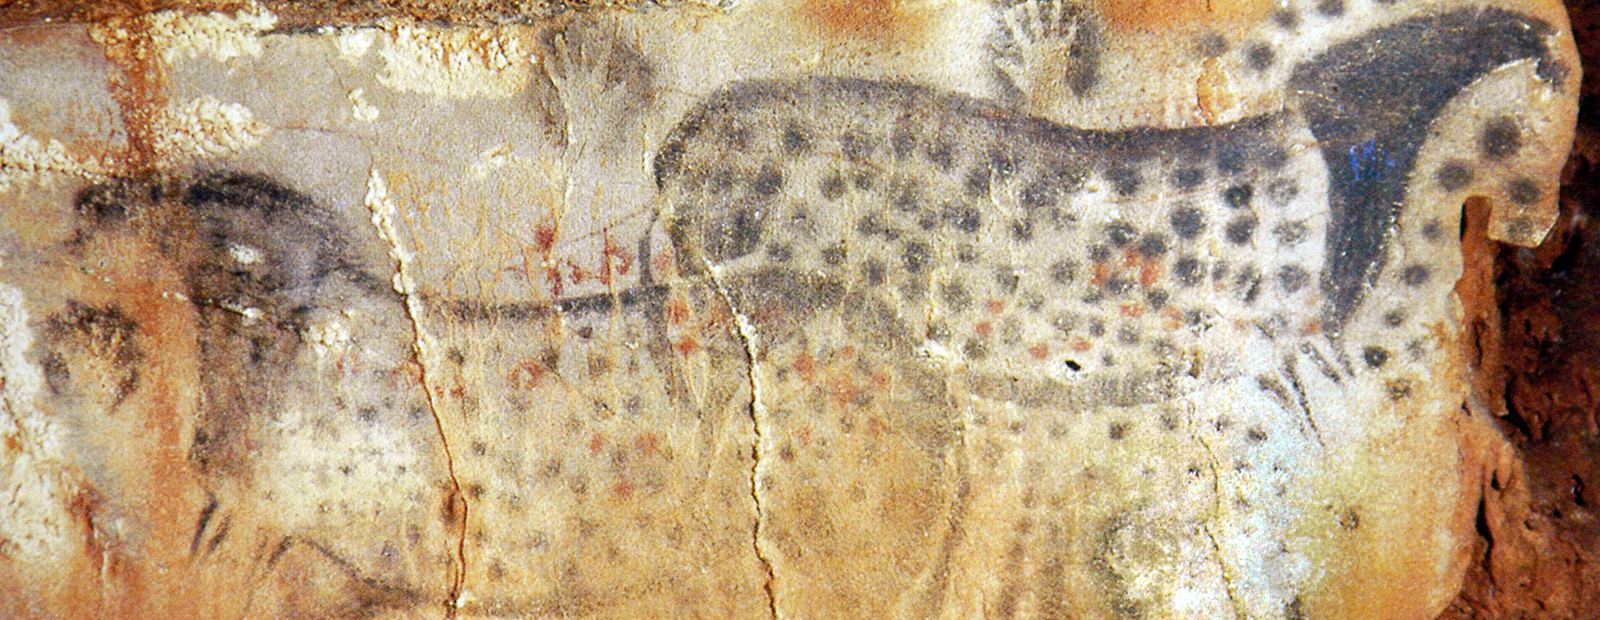 Those startling handprints are a frequent motif in the late Paleolithic period, including the artwork in Pech Merle. A hand was placed on the wall and the artist used pigment that was drawn into a tube with their mouth and blown onto the wall, creating the outline of his or her hand. Cro-Magnon people lived only at the entrance of caves, or in shallow depressions within the giant limestone cliffs. Experts believe the interior of caverns was reserved for sanctuaries, devoted to the worship of animals, magic or the hunt.